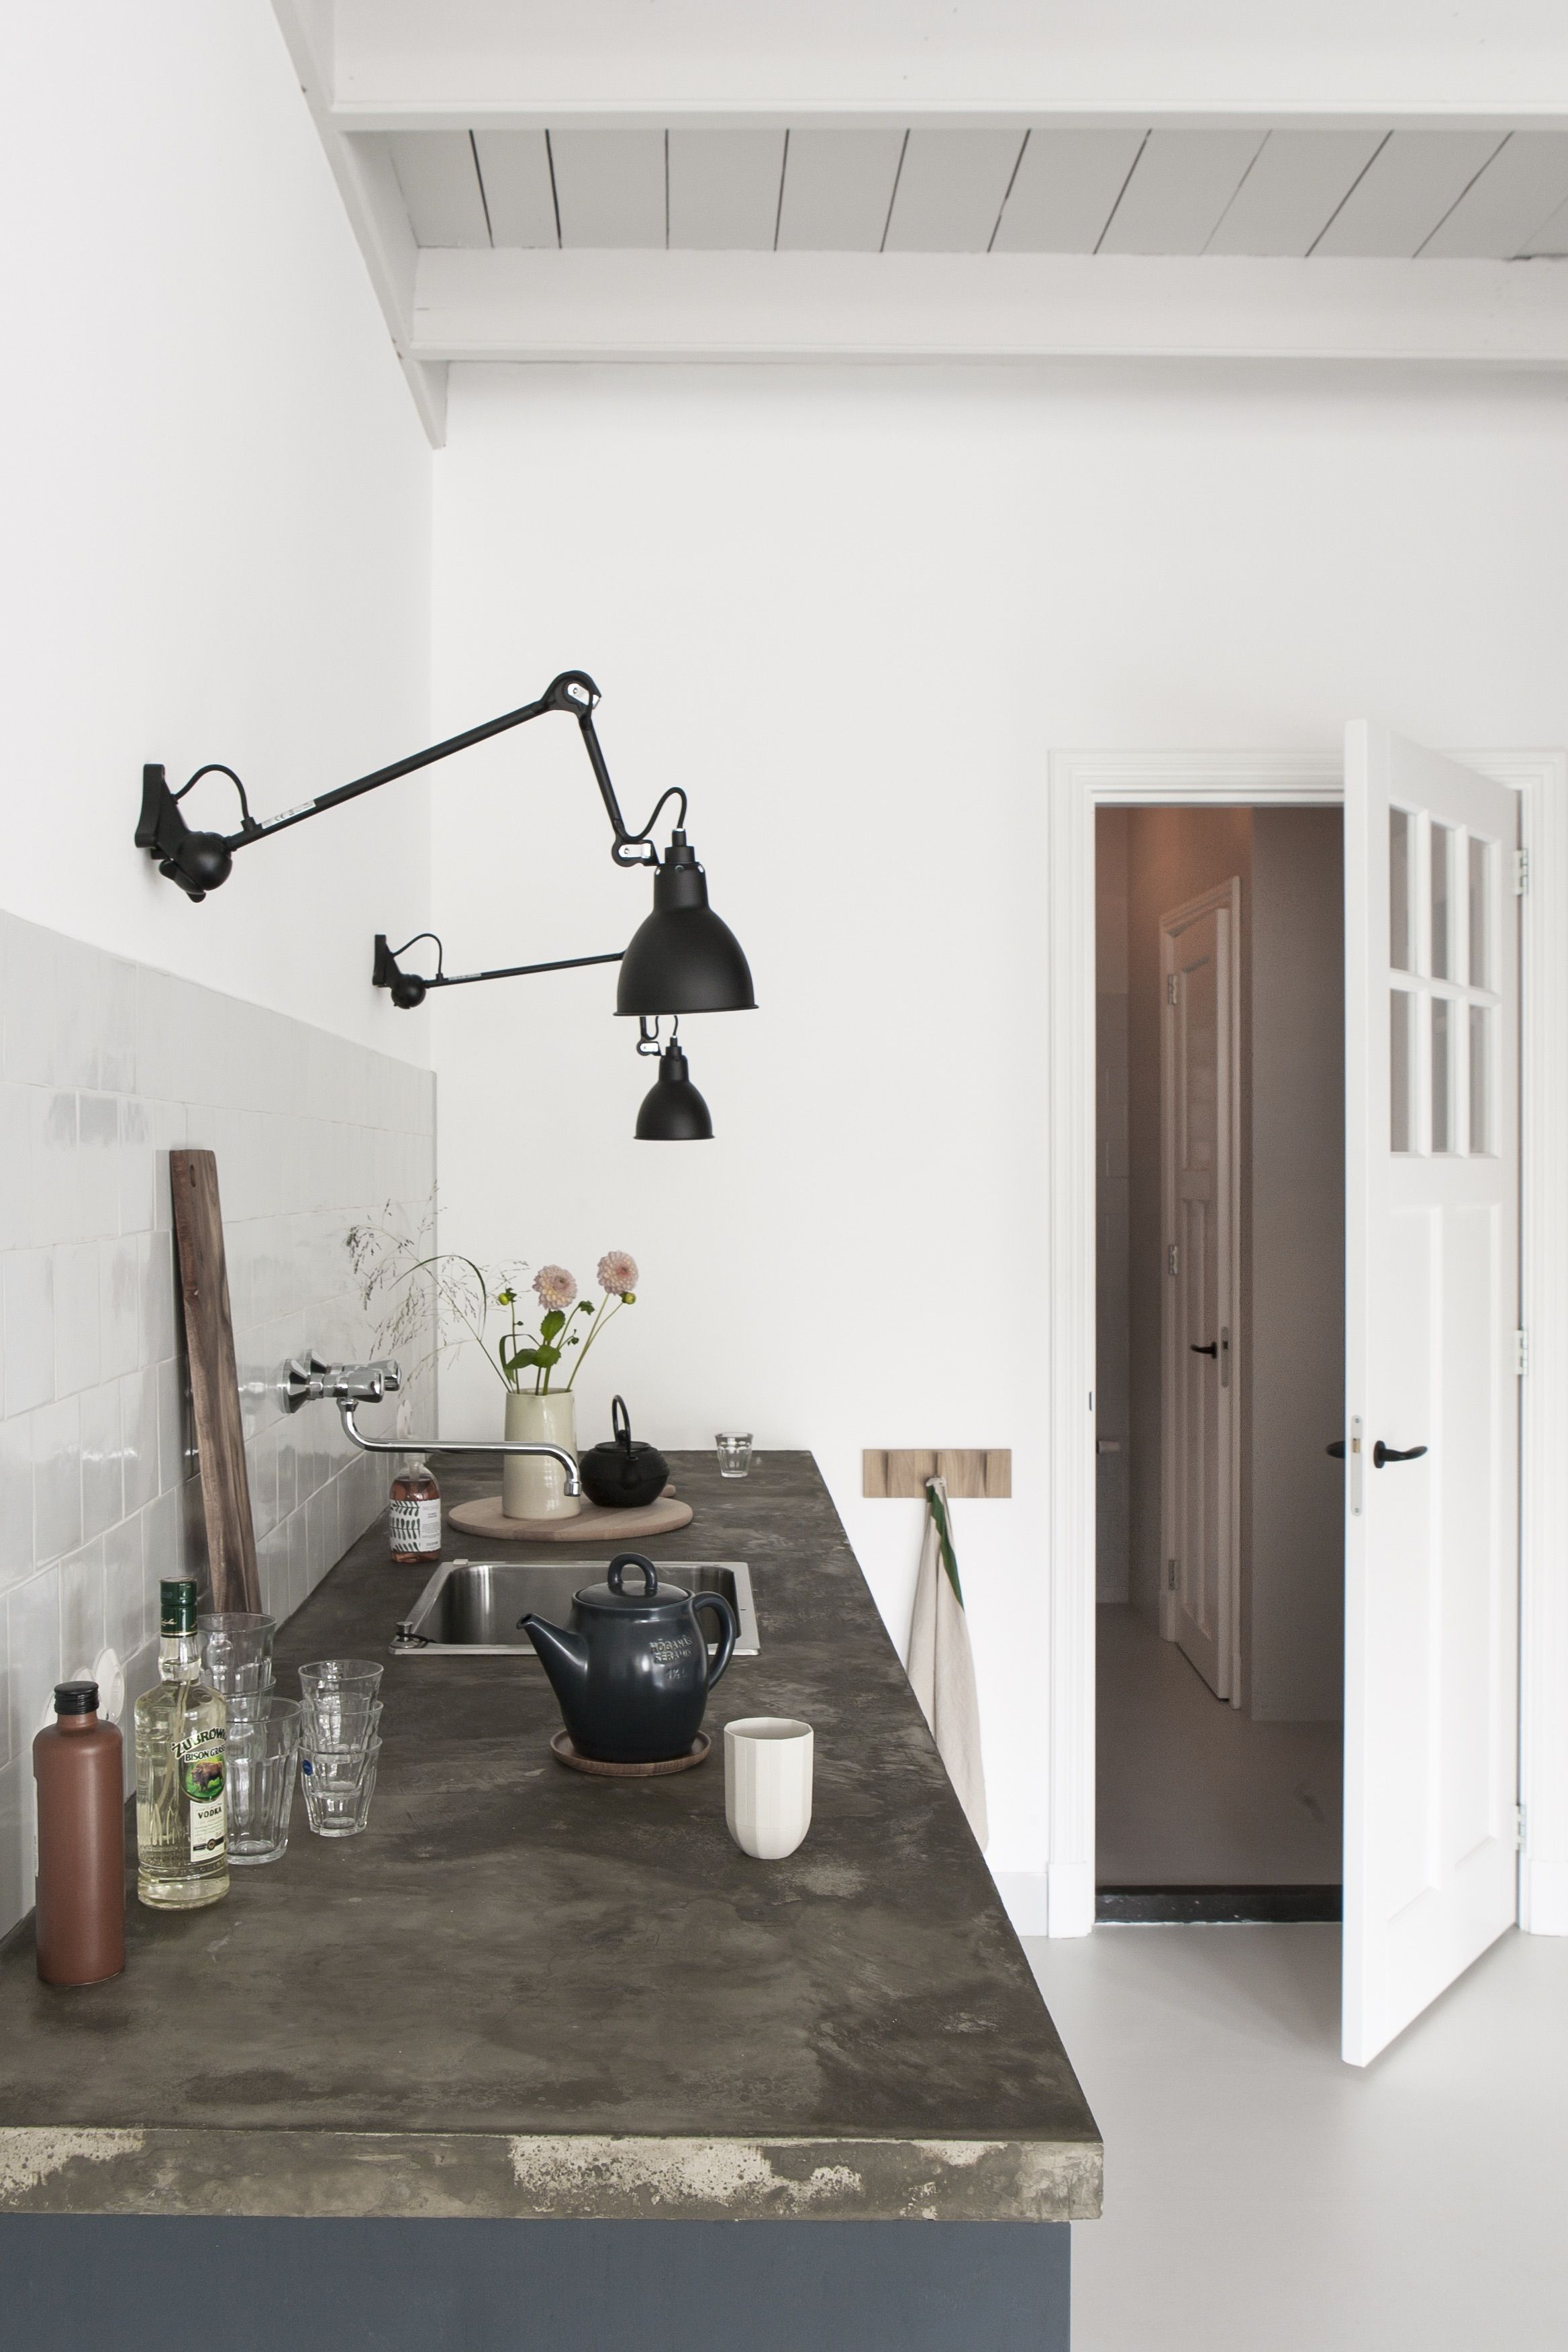 Dutch interior designer Christen Starkenburgu0027s Interieur-Plus workspace/ kitchen at Jan de Jong her familyu0027s design shop in Friesland the Netherlands | ... : kitchen wall lighting - hauntedcathouse.org